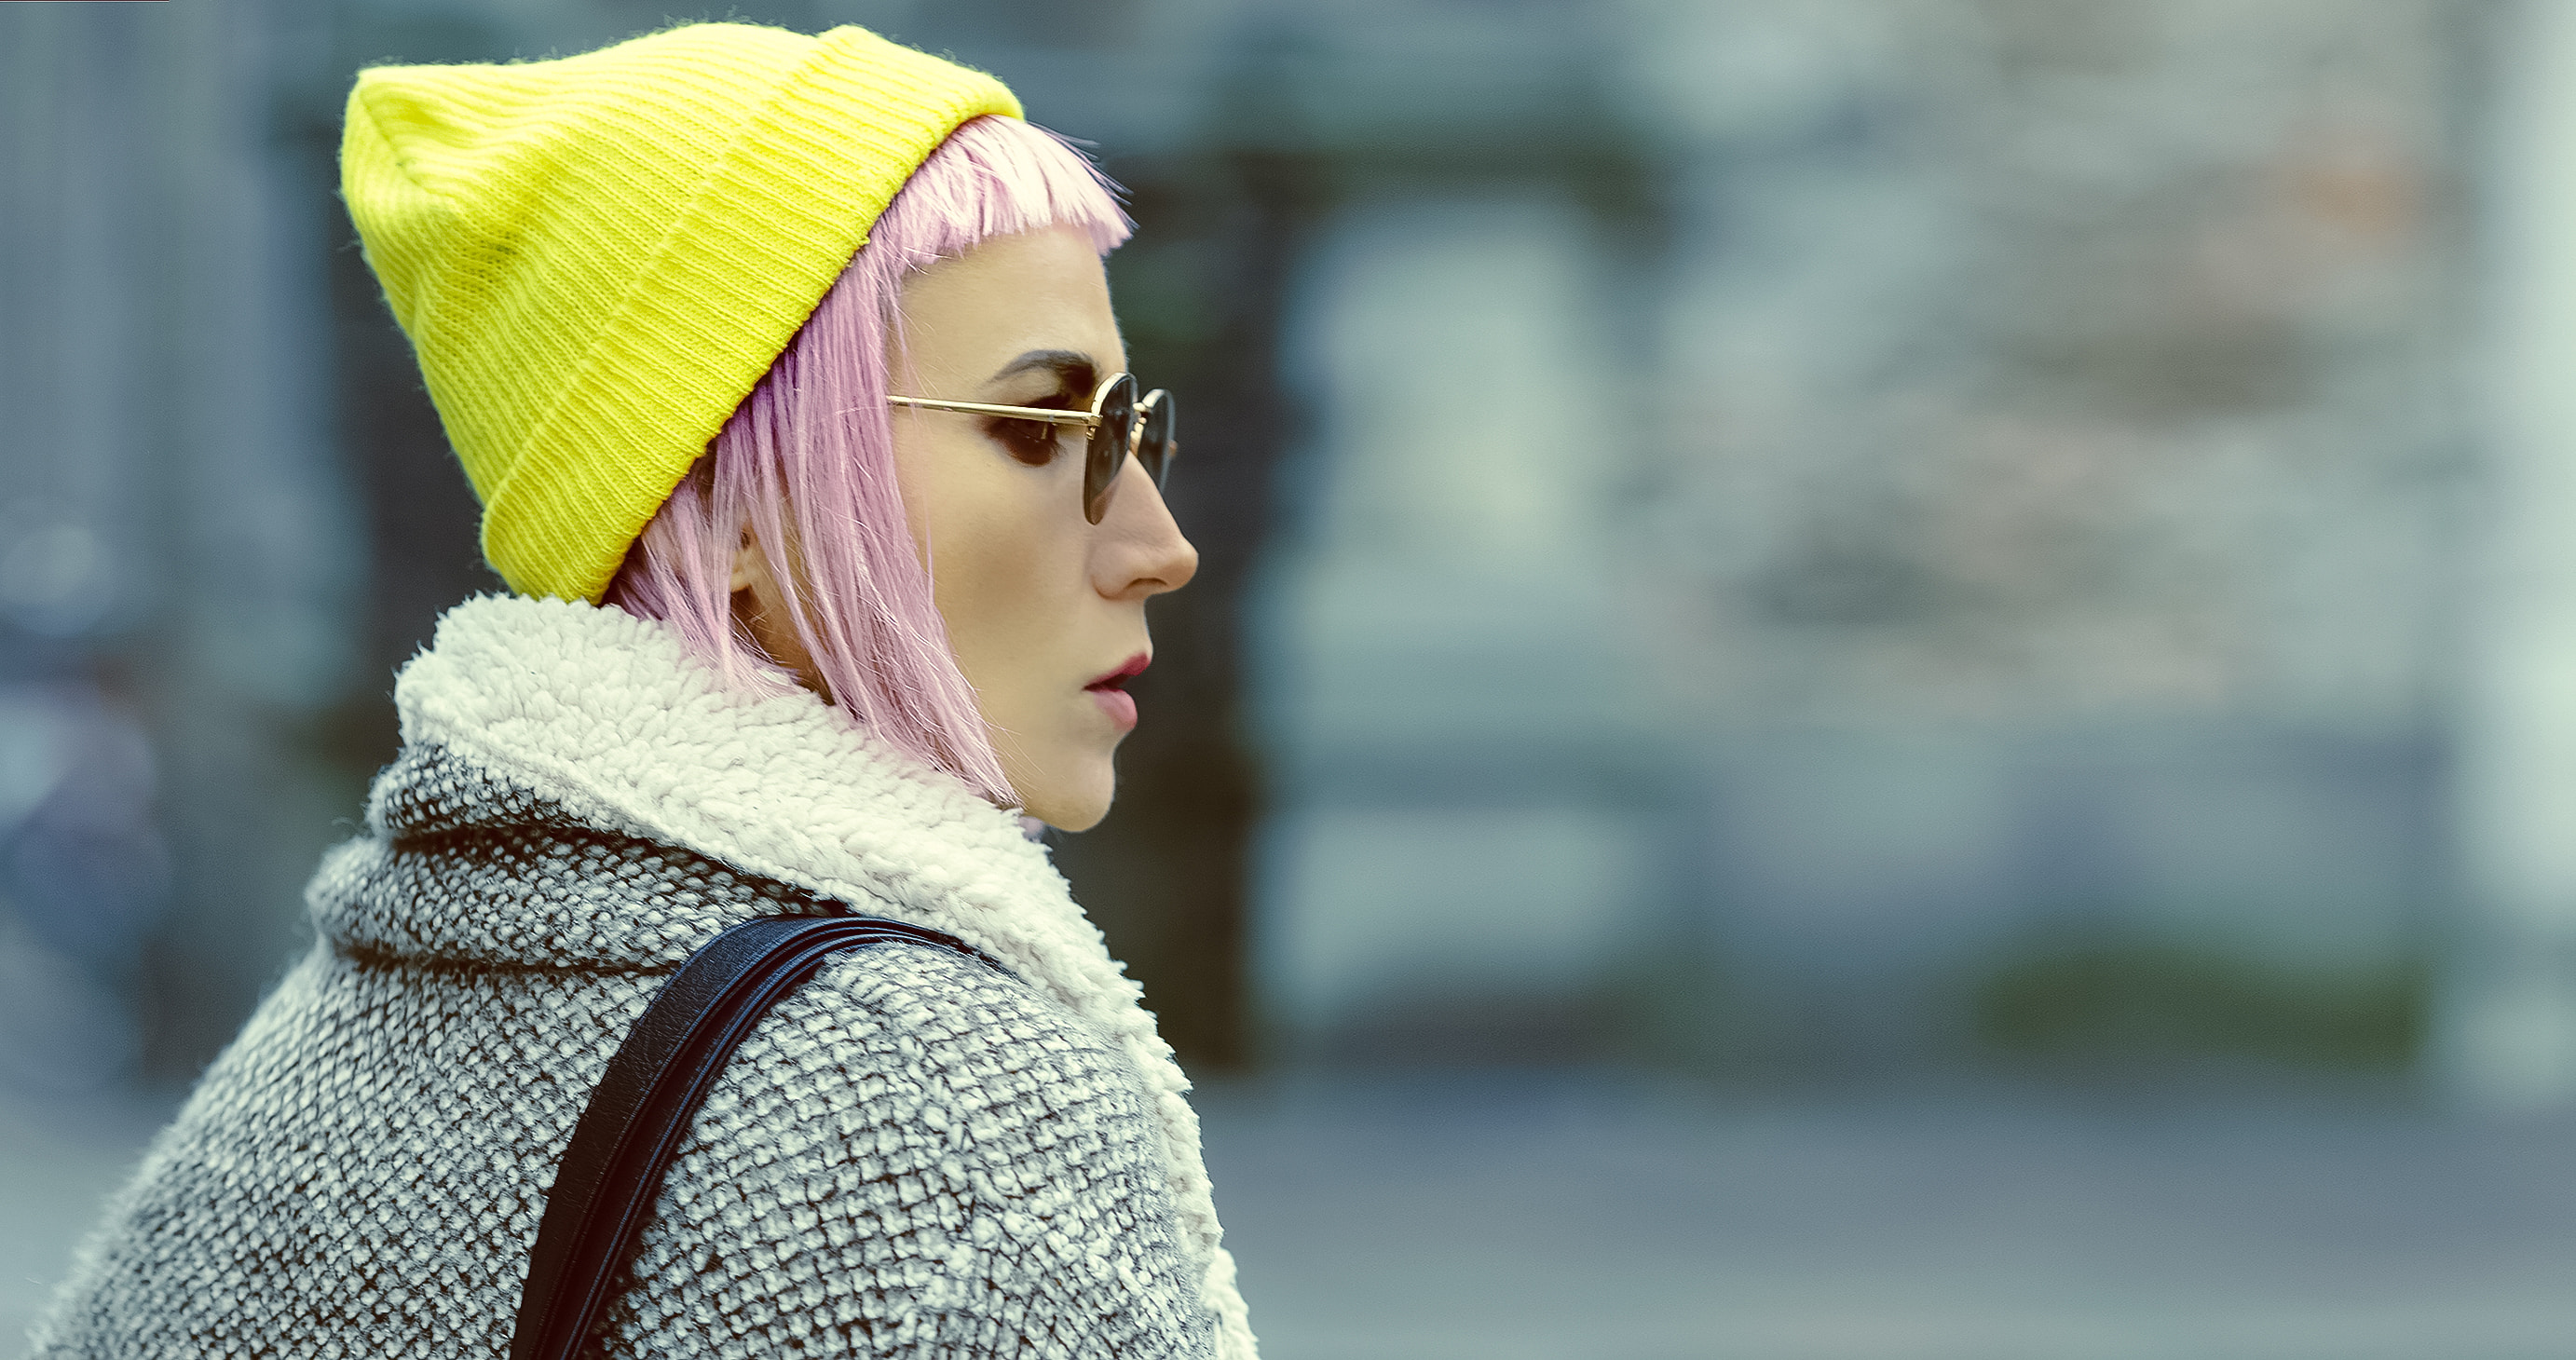 Stylish girl with pink hair on the street. urban fashion